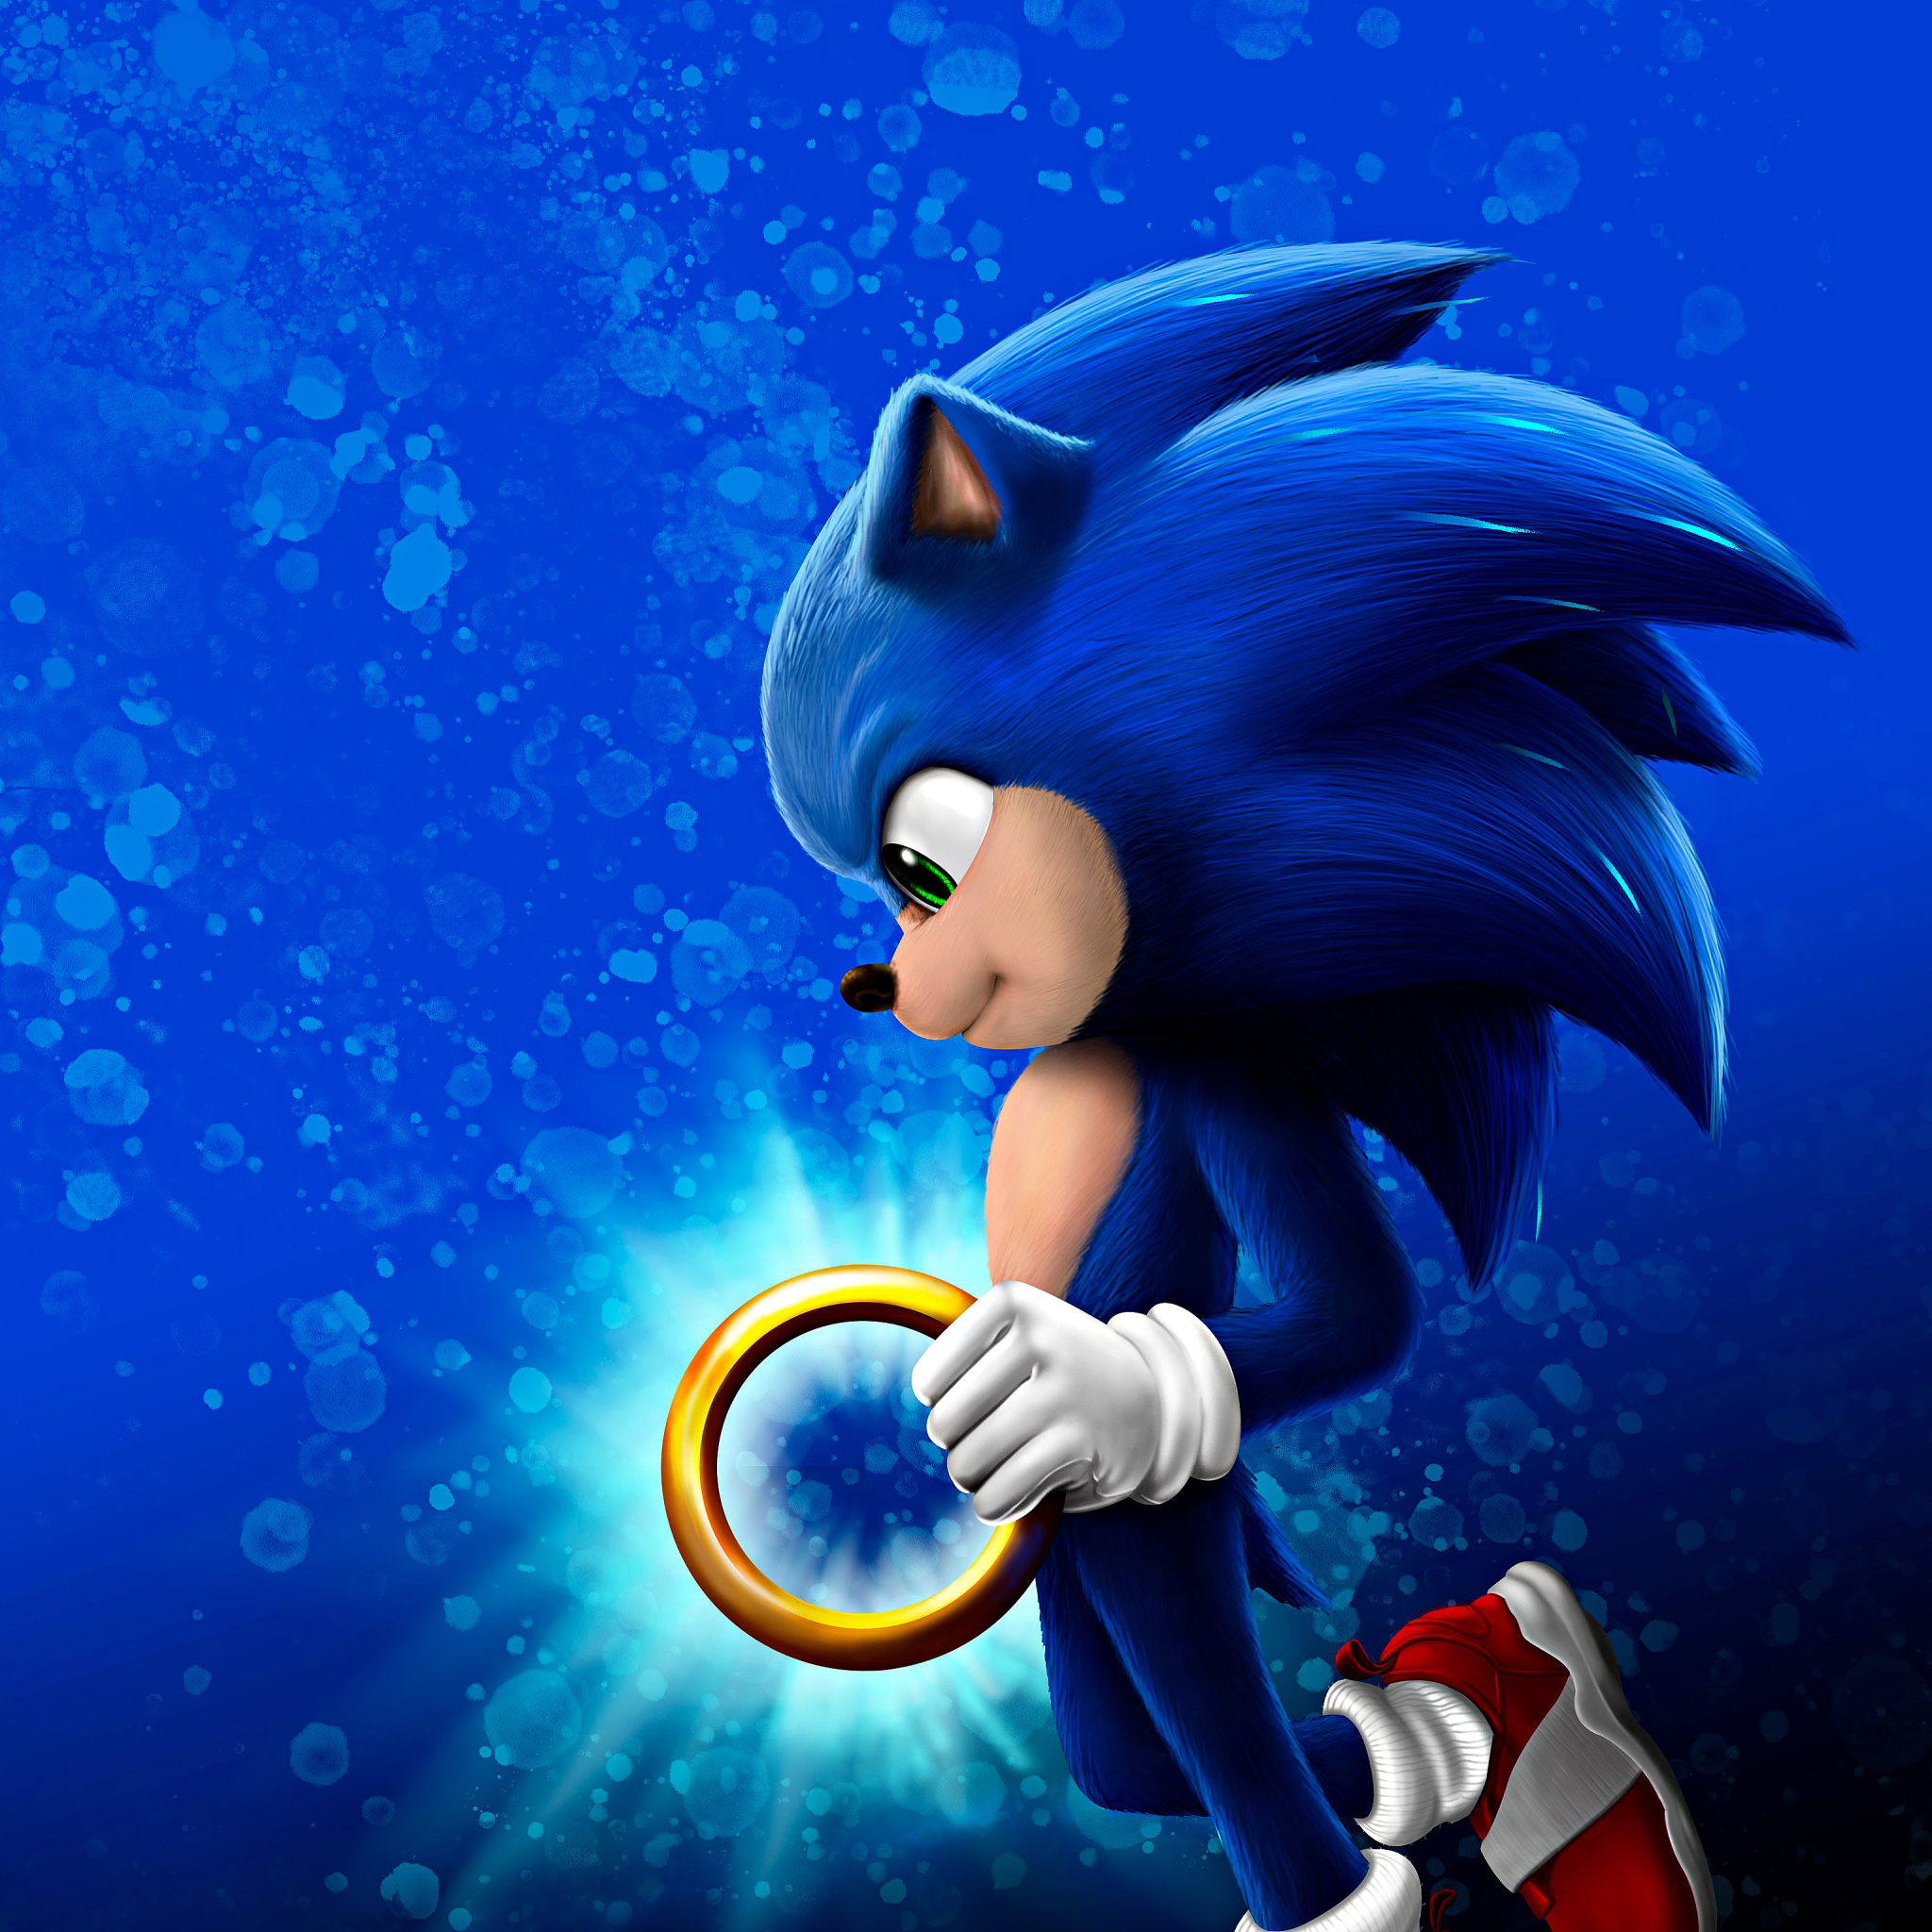 2048x2048 New Sonic Hedgehog Ipad Air Wallpaper Hd Movies 4k Wallpapers Images Photos And Background